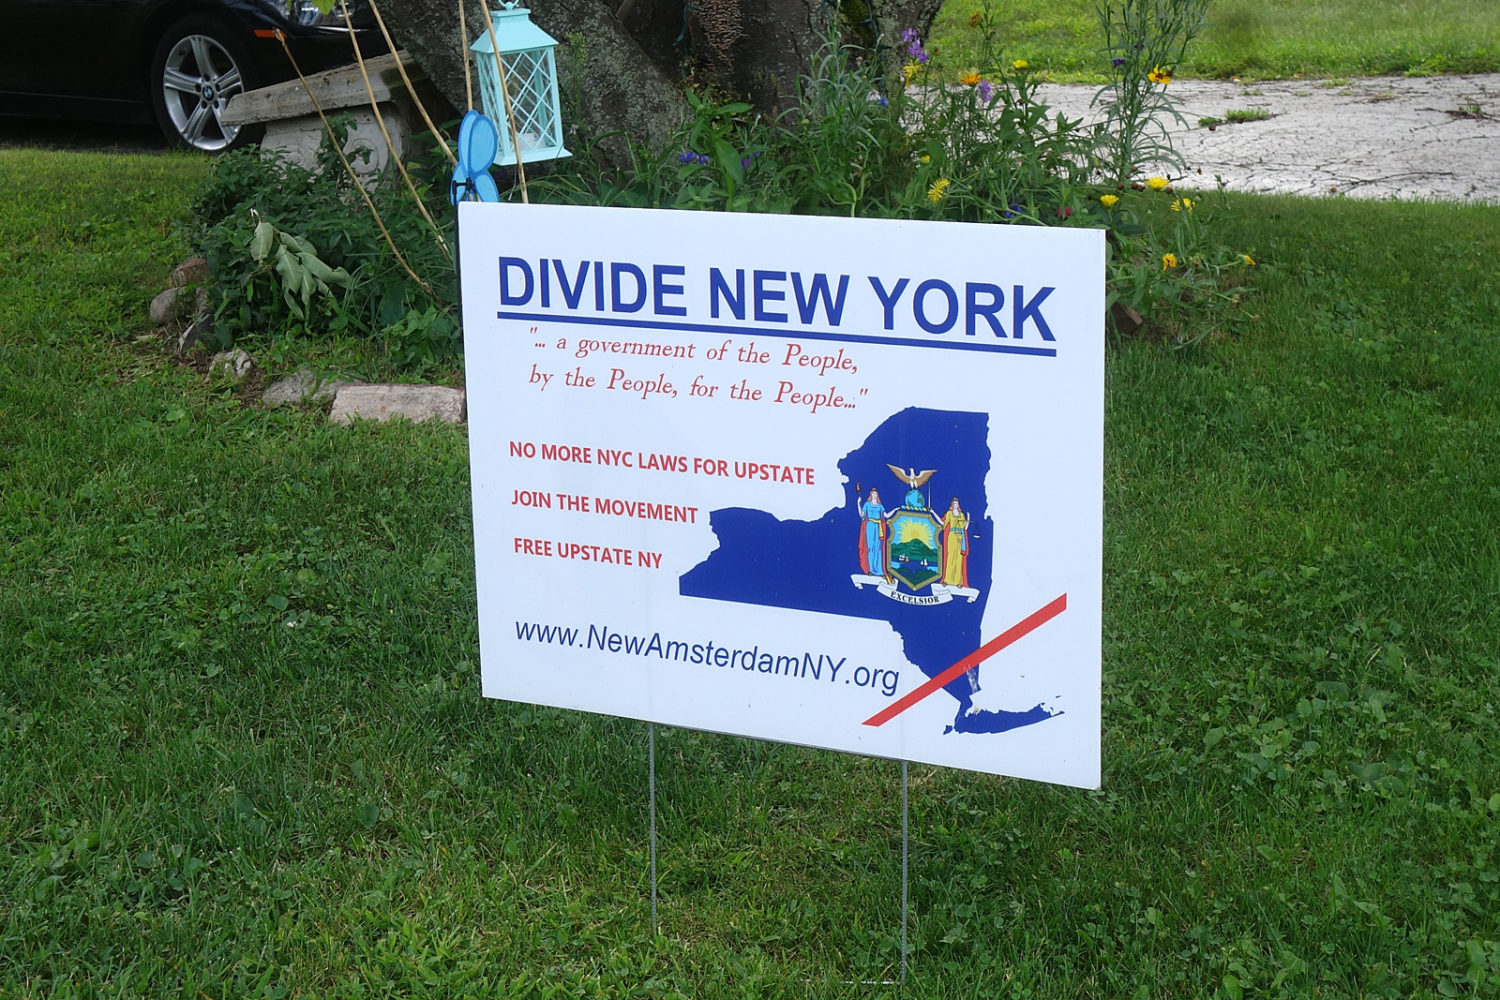 Divide New York sign on lawn in Sea Breeze neighborhood.